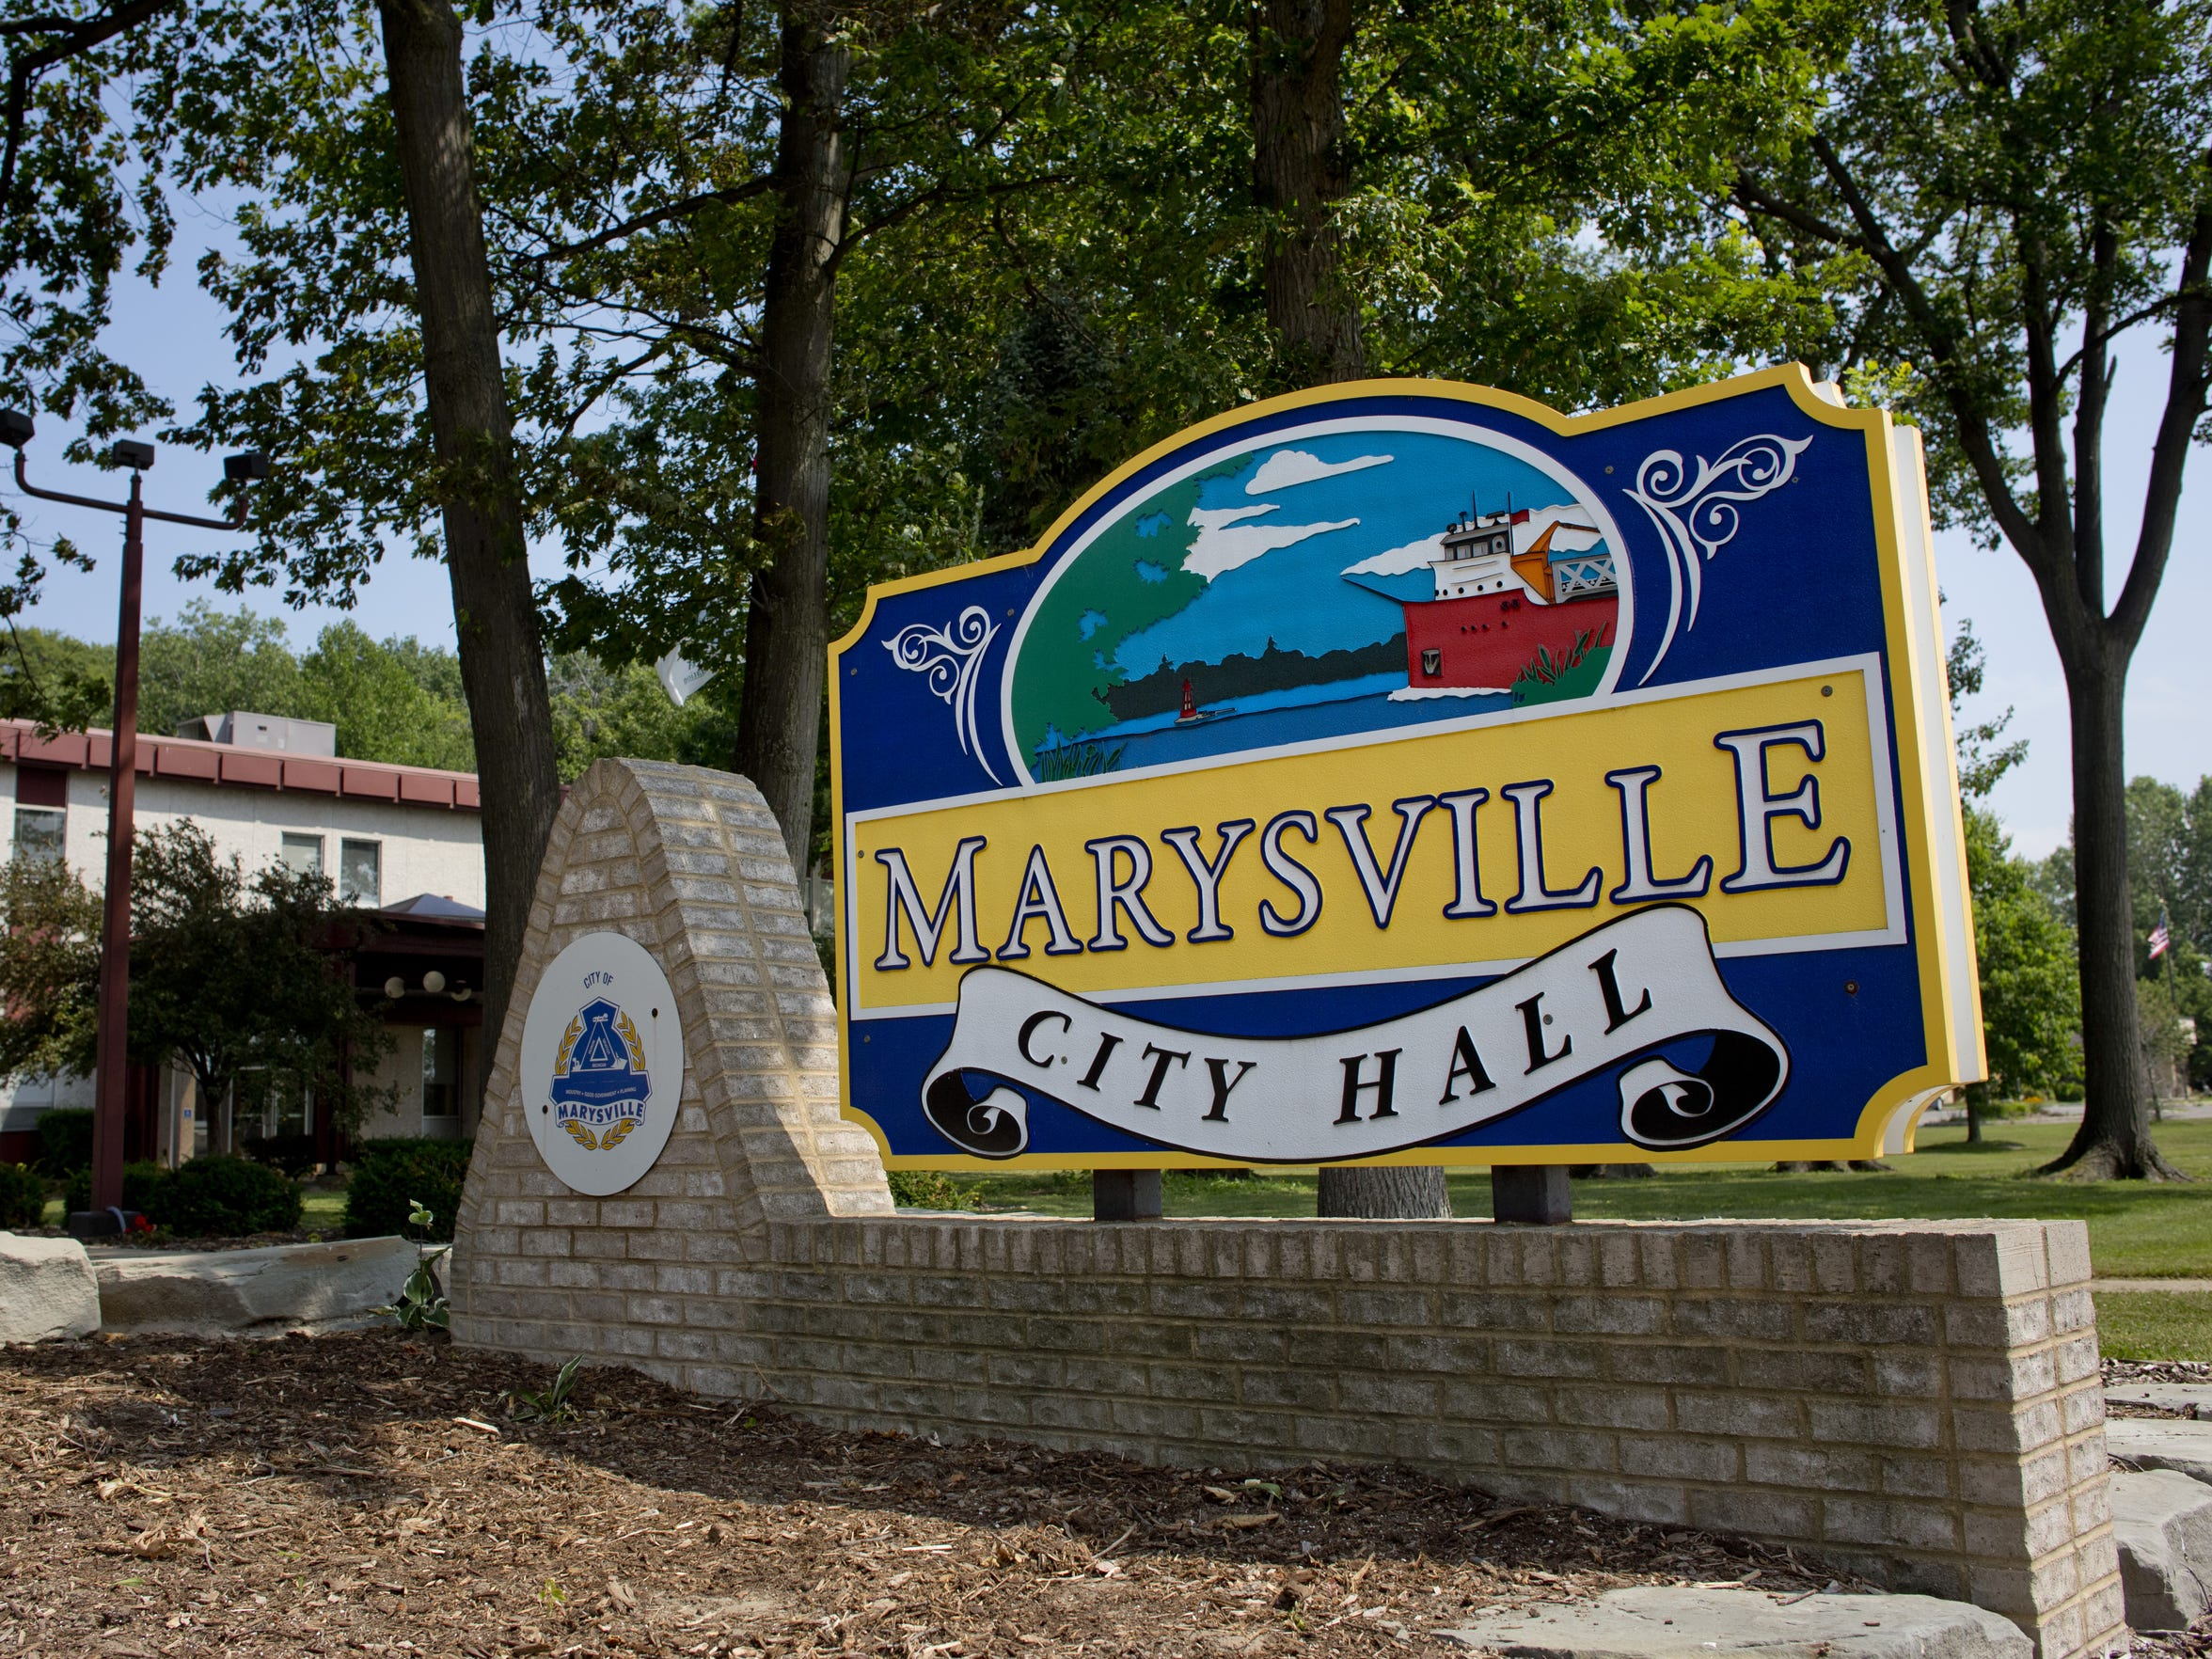 Marysville City Hall, 1111 Delaware Ave.